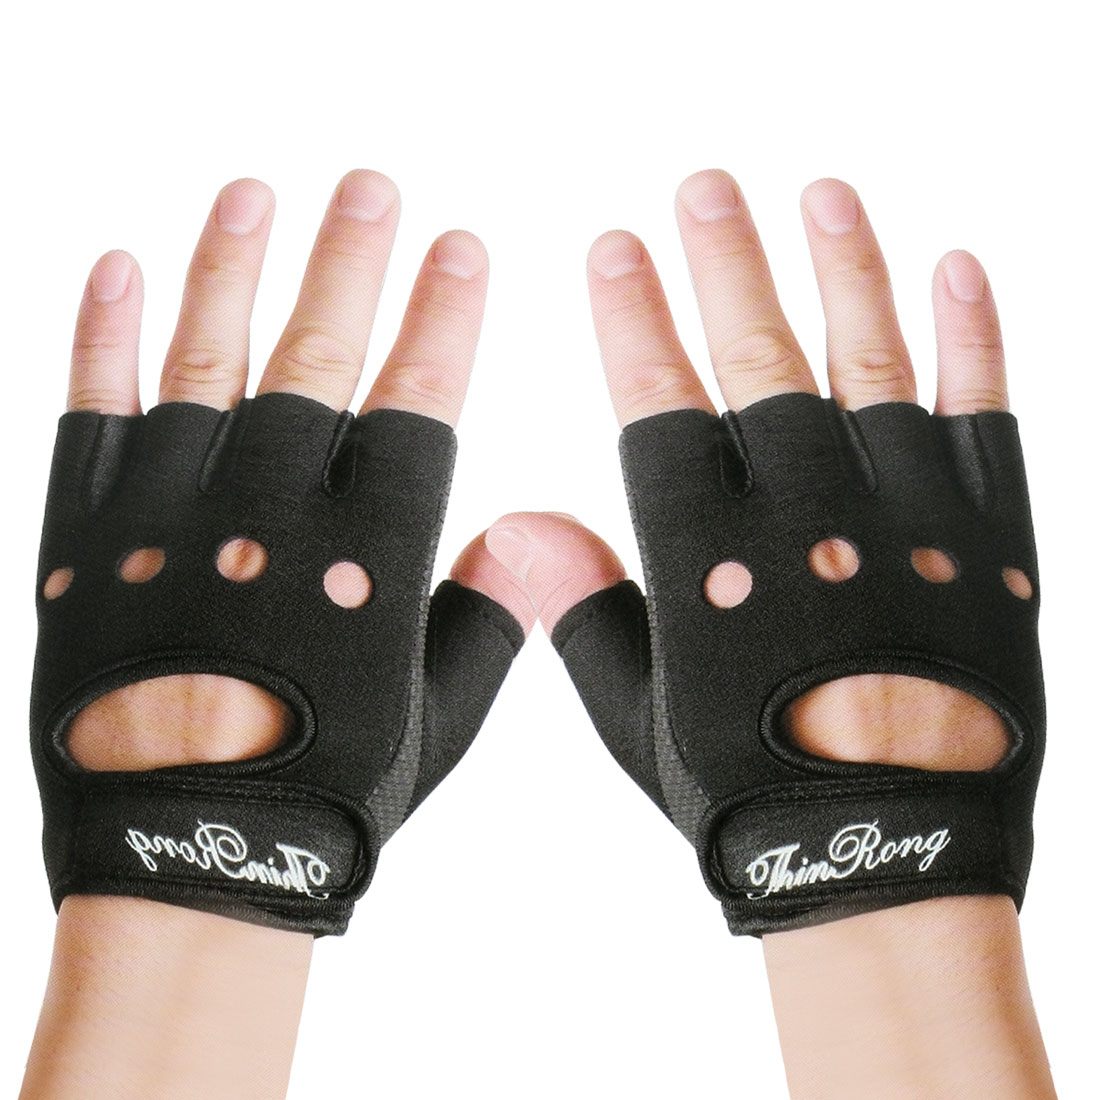 Size M Hollow Out Design Back Fingerless Black Blue Gloves Support